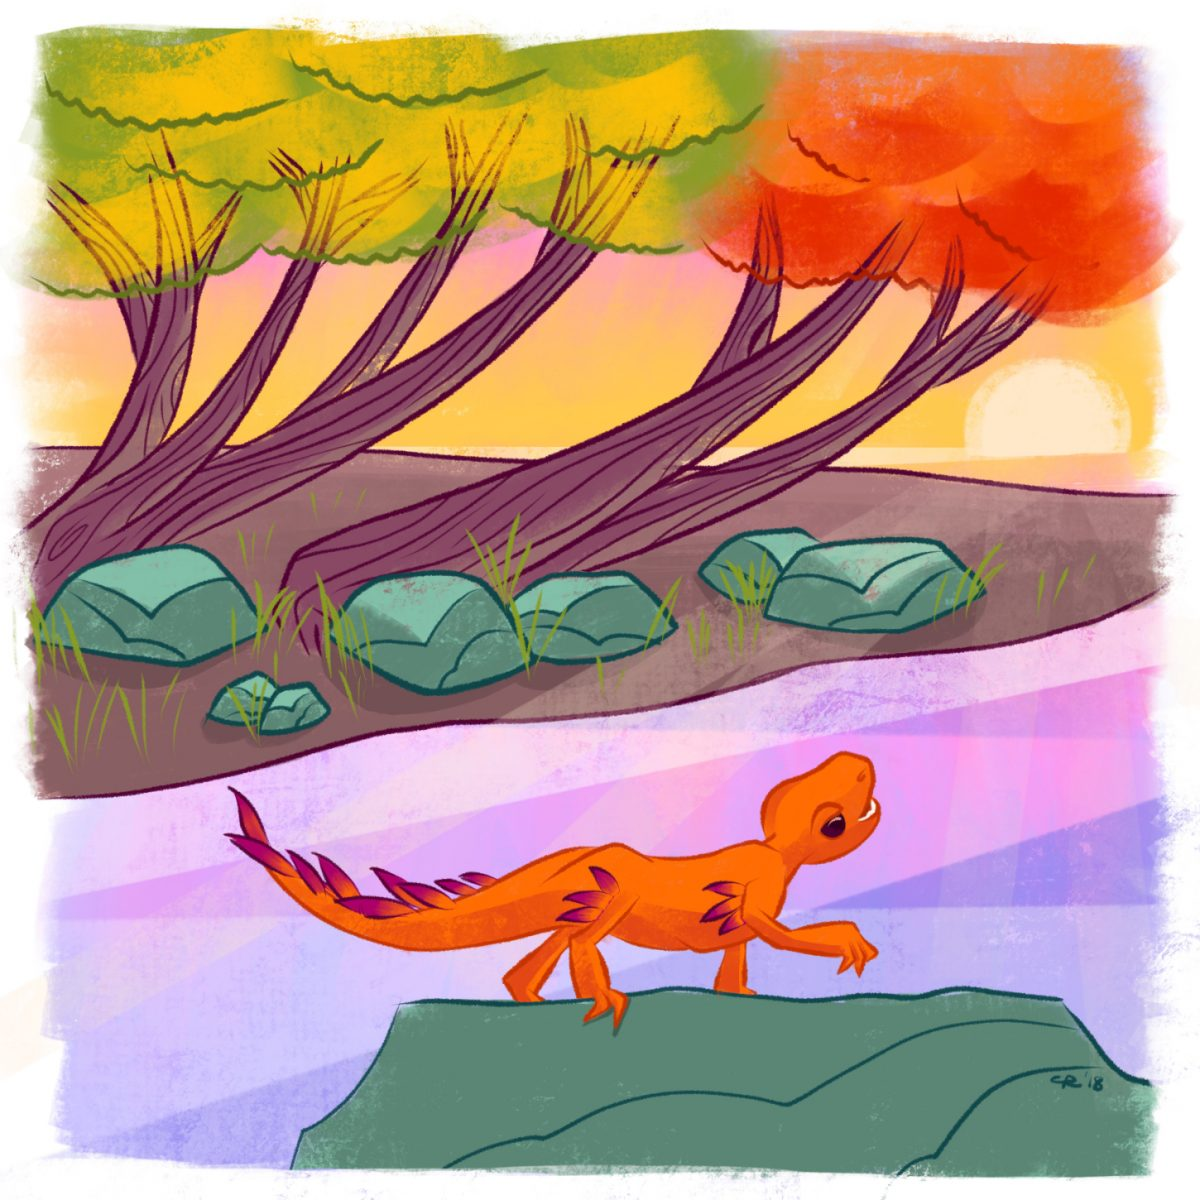 A little dragon pauses to enjoy a later afternoon sunset through the many-colored autumnal trees.